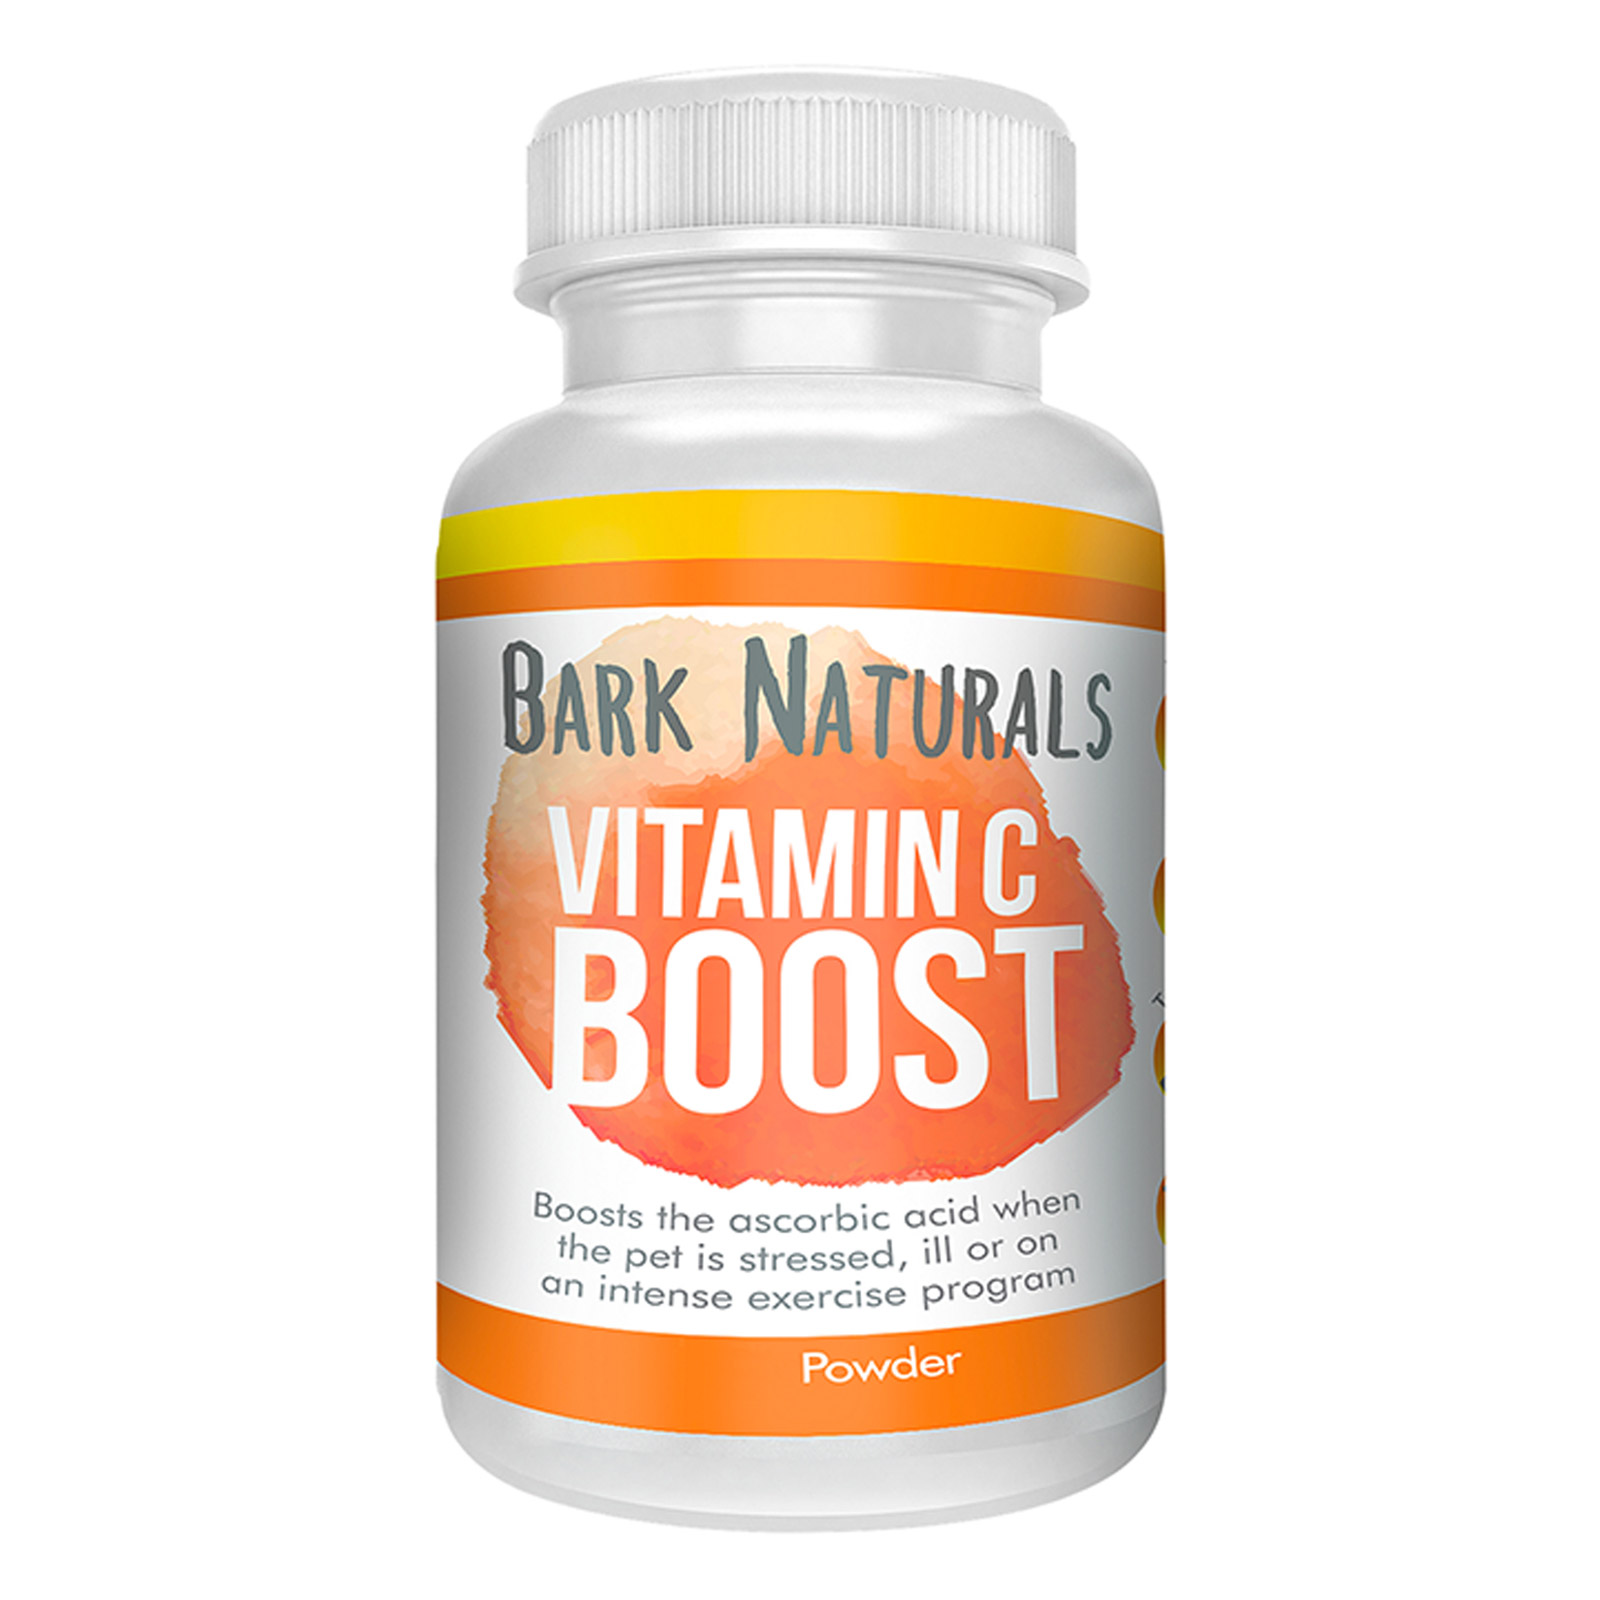 Bark Naturals Vitamin C Boost Powder for Dogs - 150 gm